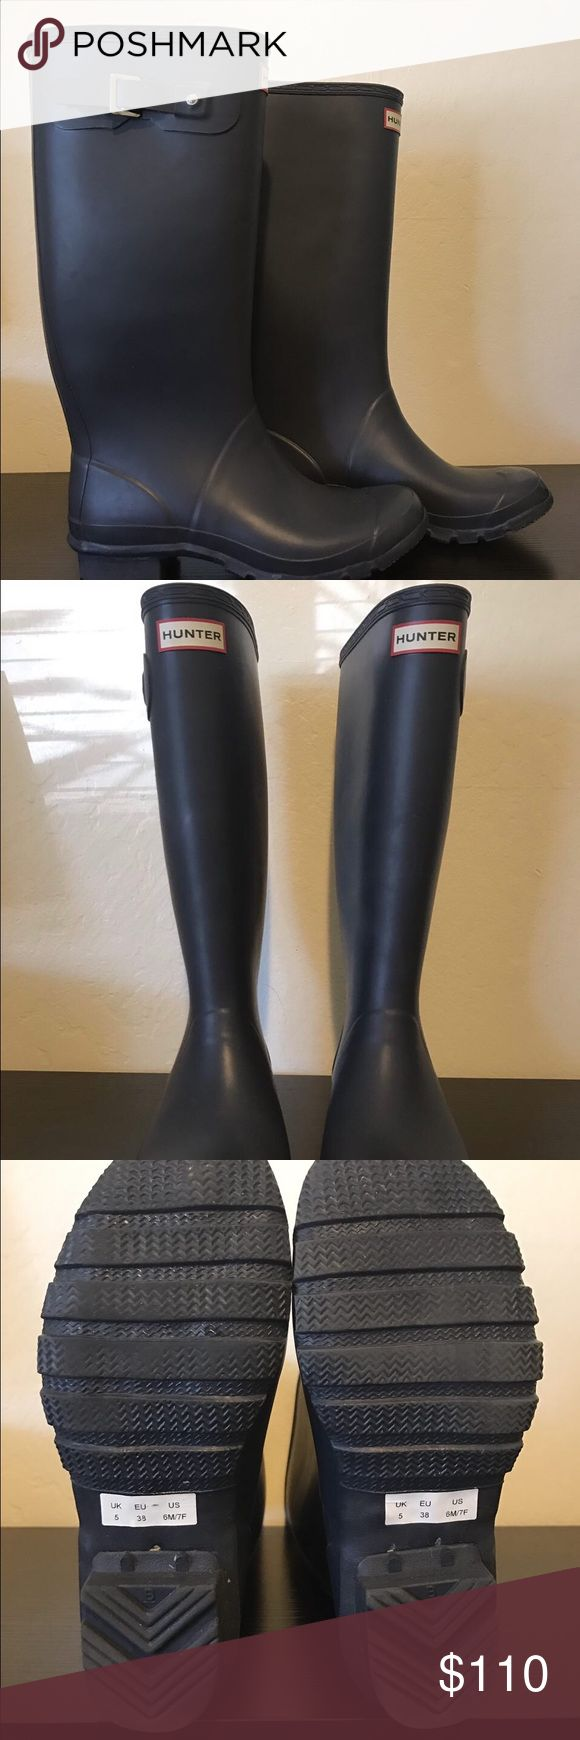 "Hunter Huntress Wellies - Navy In like new condition these have only been tried on a few times! No scuffs, scratches, or other defects. These are the wider calf version.  The Navy color goes with everything.  I absolutely love these boots, unfortunately they just don't fit! 15.7"" calf circumference, 13.8"" shaft height Hunter Boots Shoes Winter & Rain Boots"